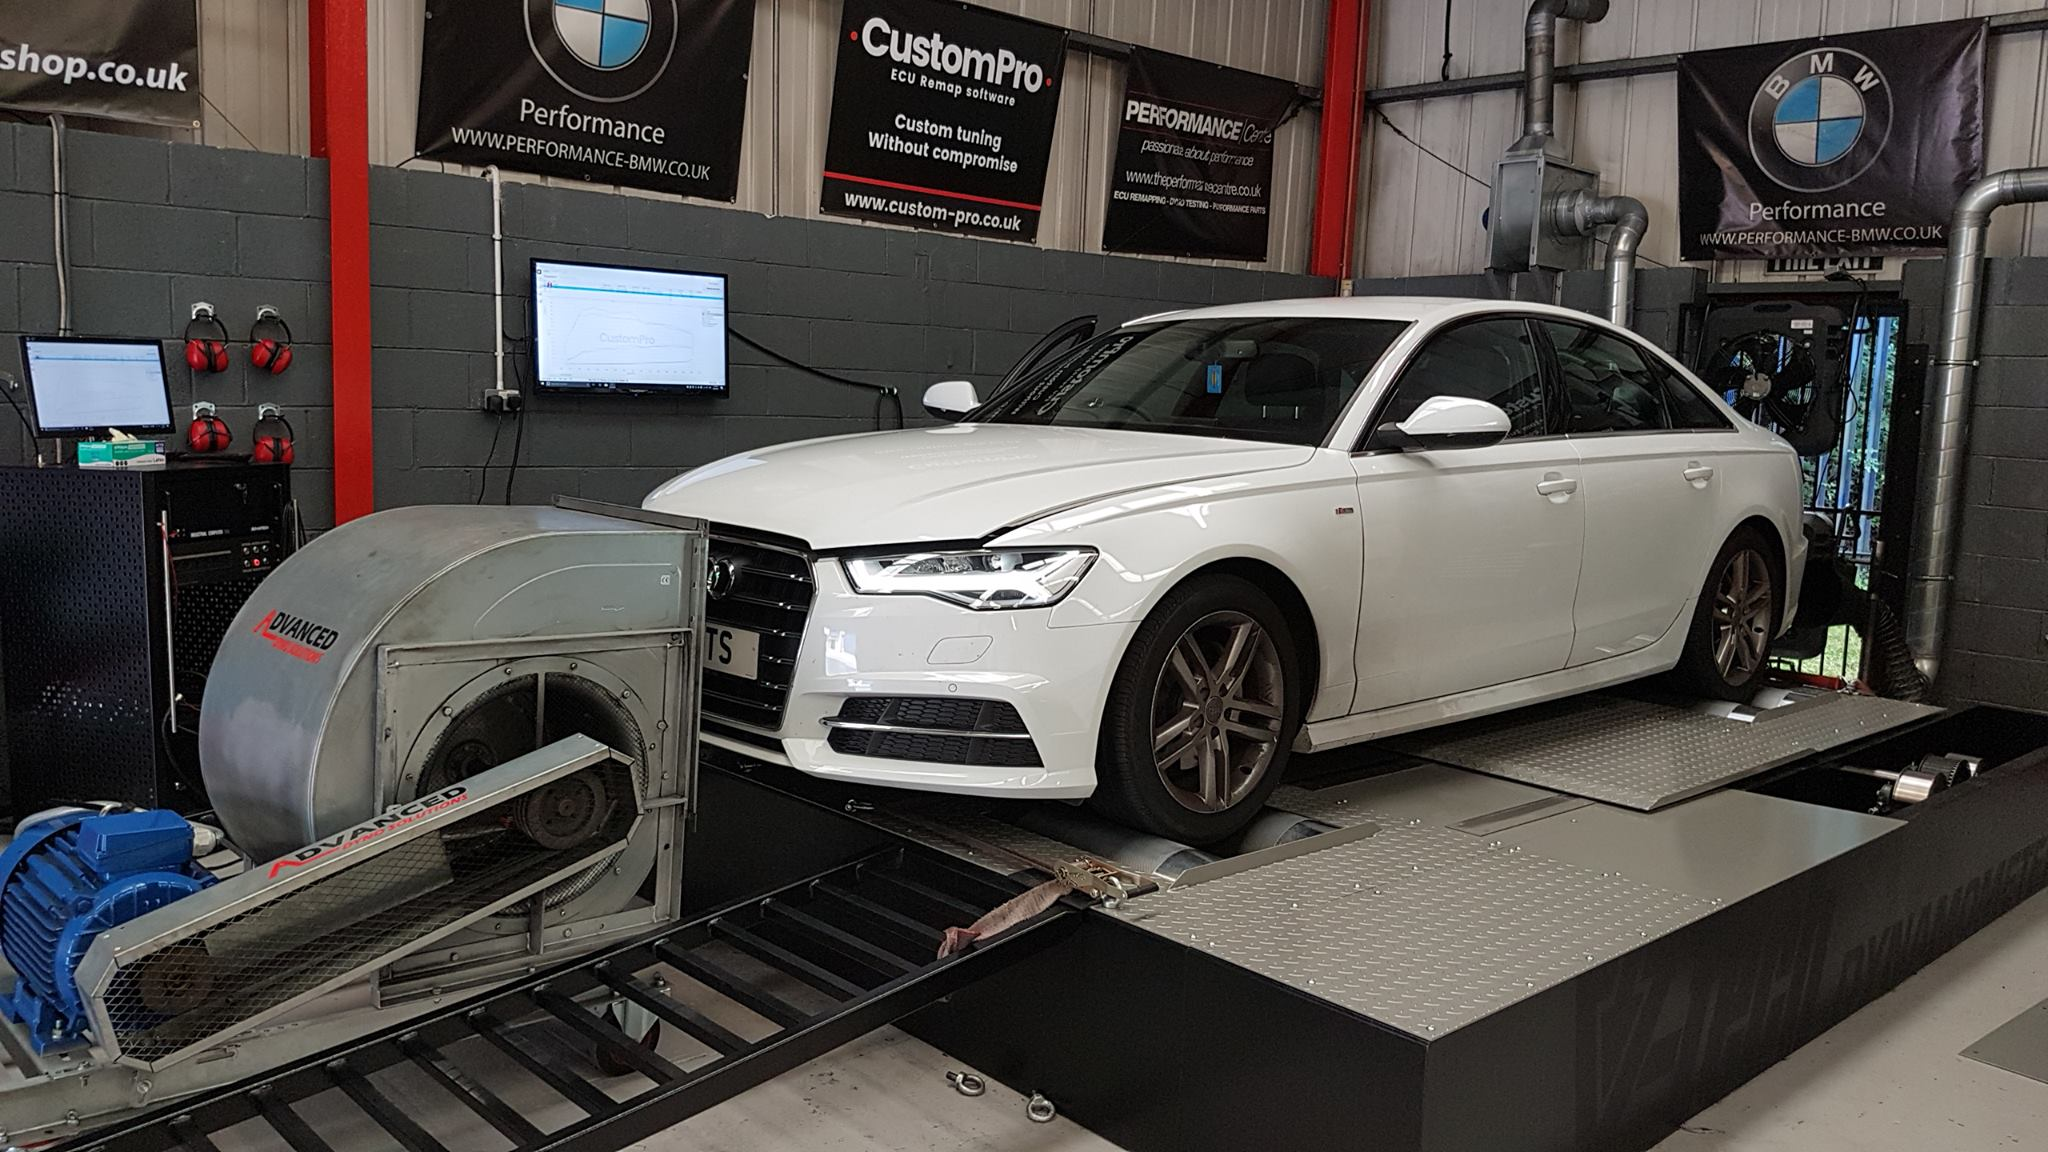 Audi A6 2.0 190 - CustomPro remap